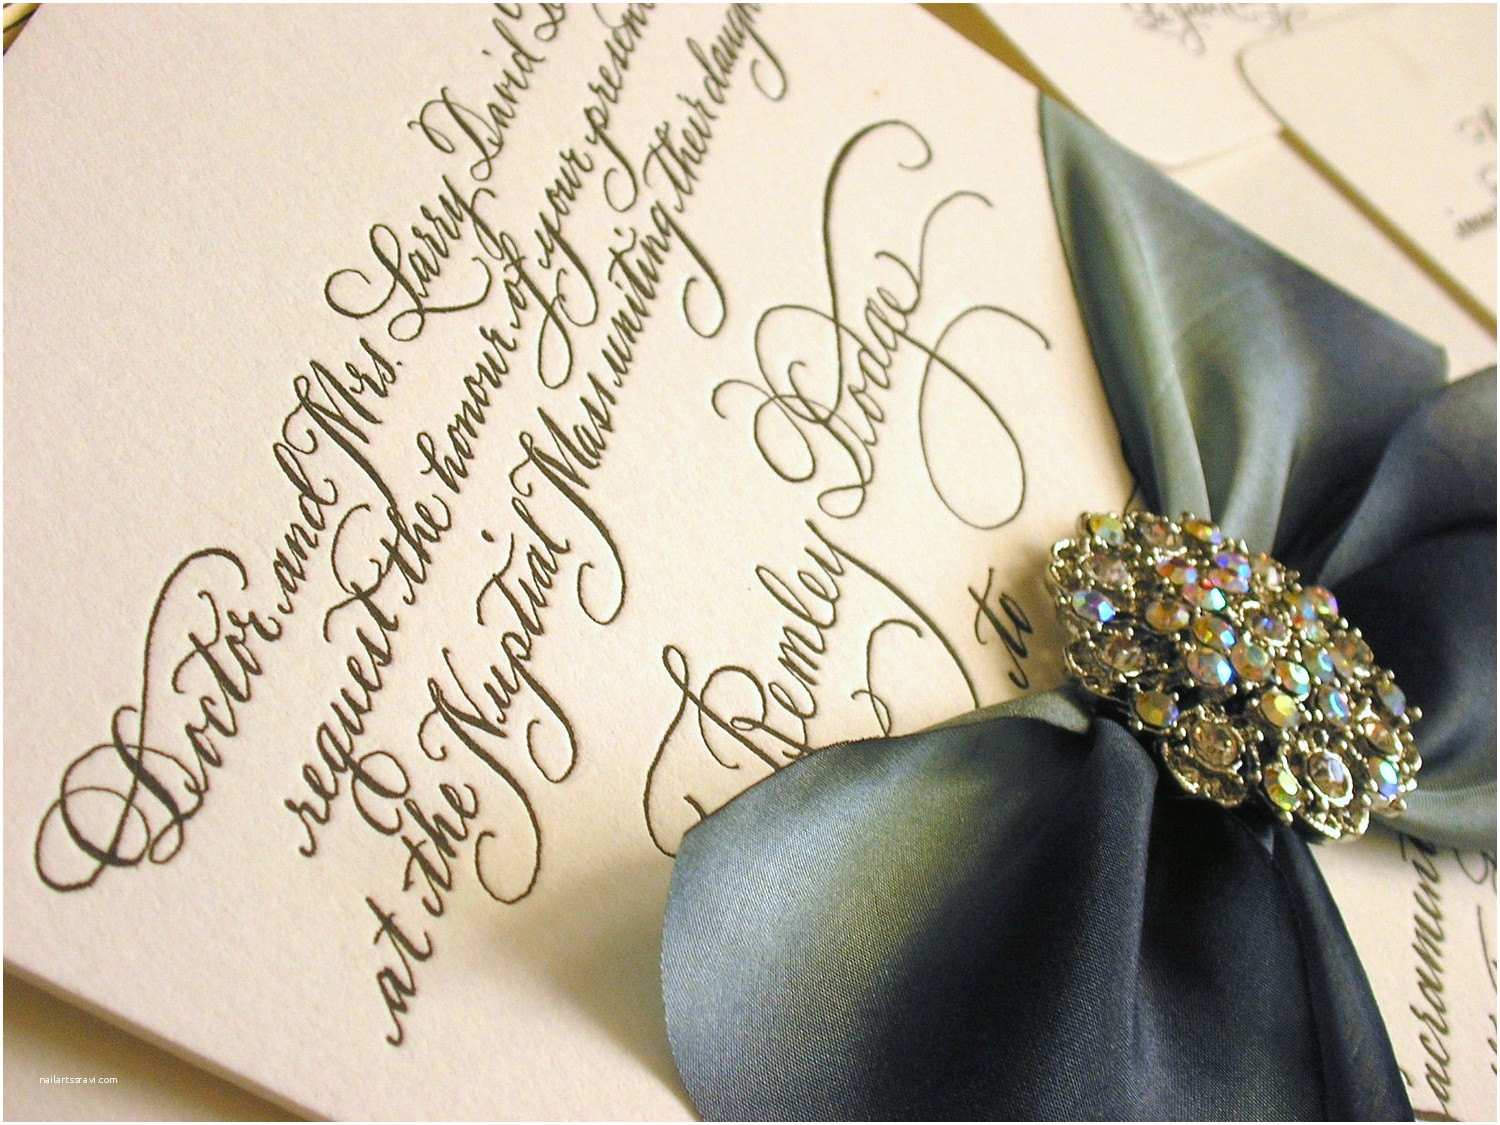 Calligraphy Pen for Wedding Invitations Diy Calligraphy Wedding Invitation Wording to Print Yourself